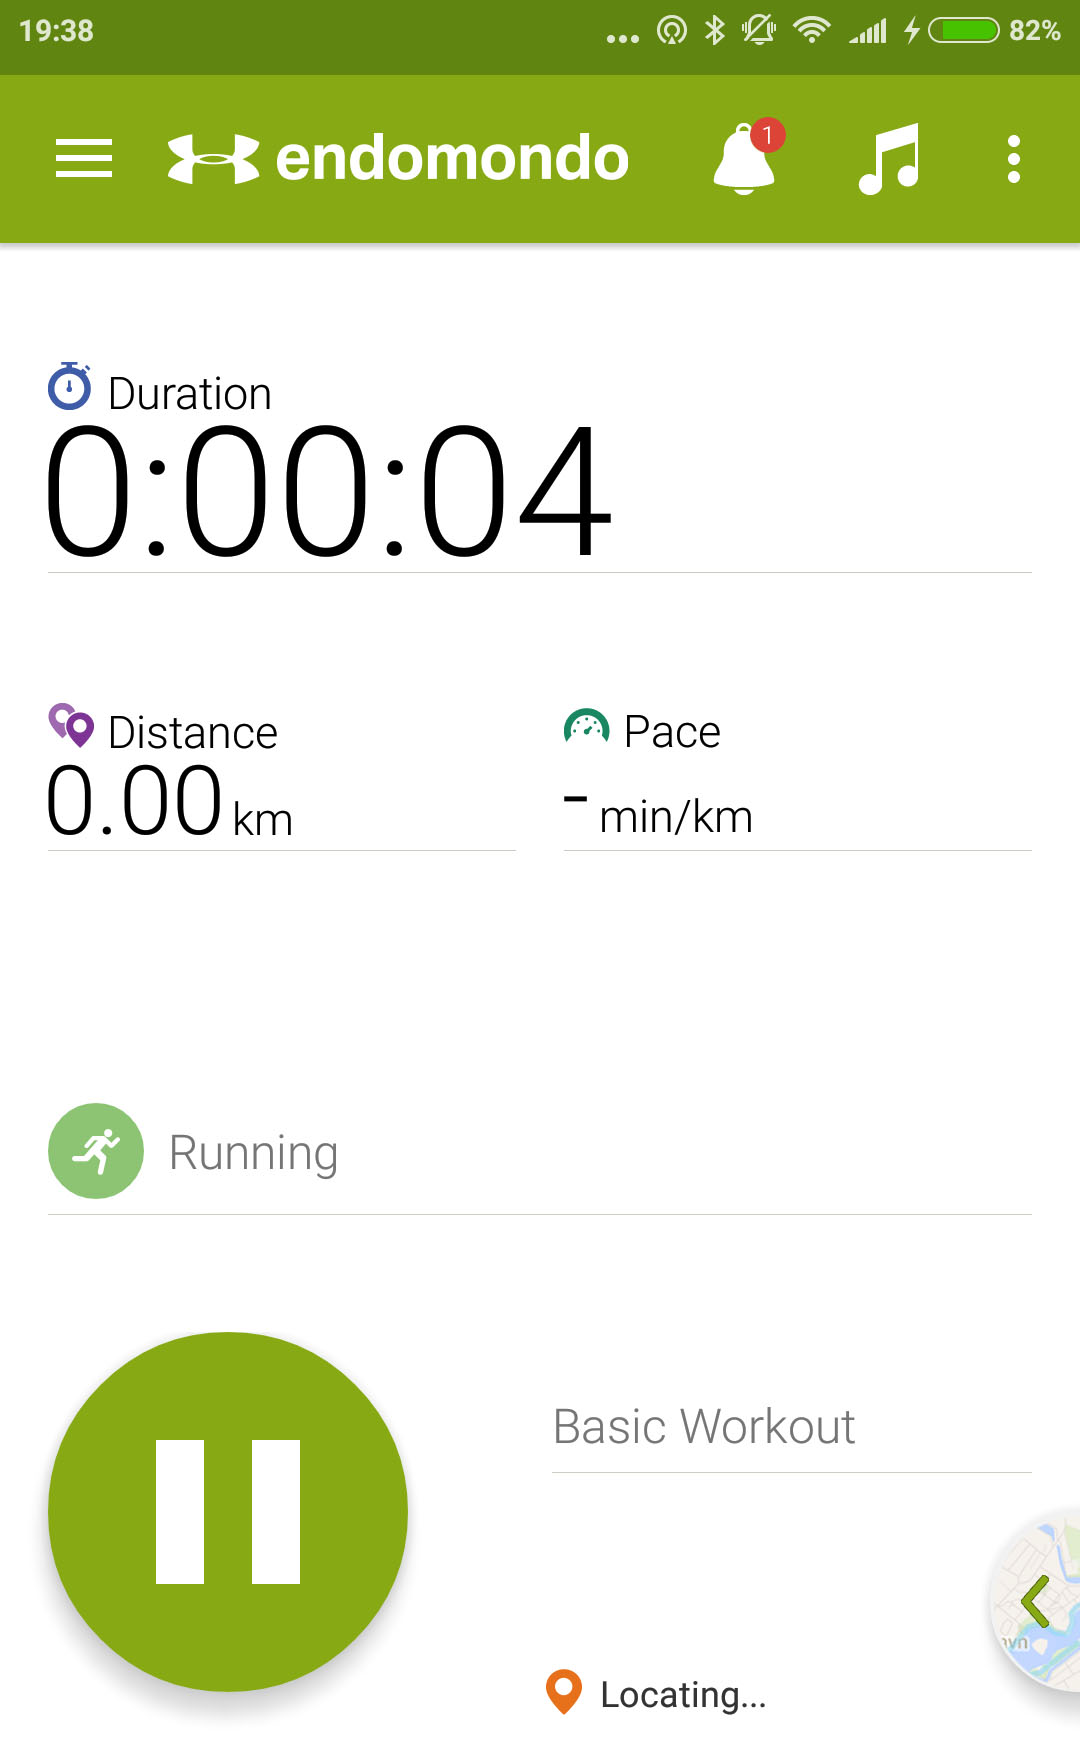 endomondo activity screen